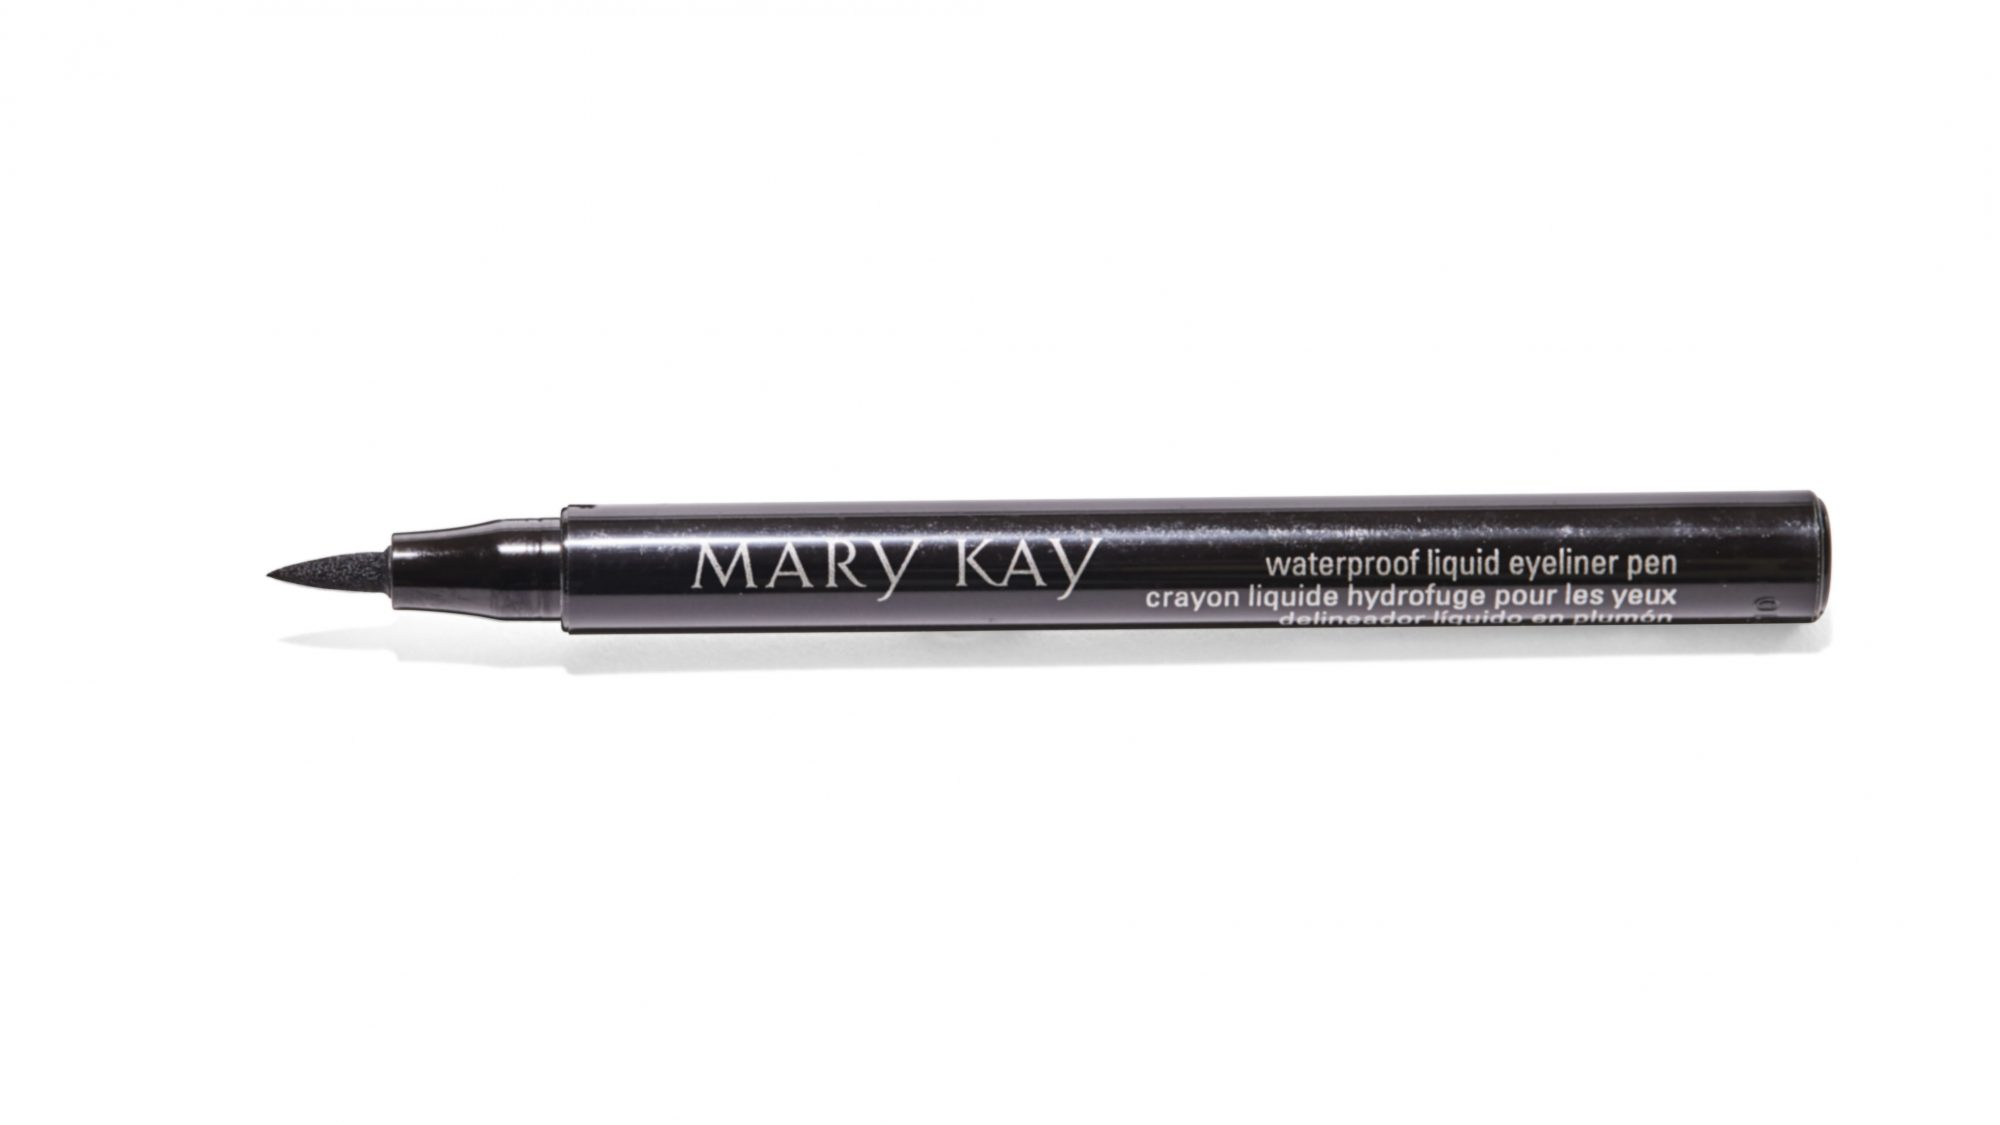 Mary Kay Waterproof Liquid Eyeliner Pen